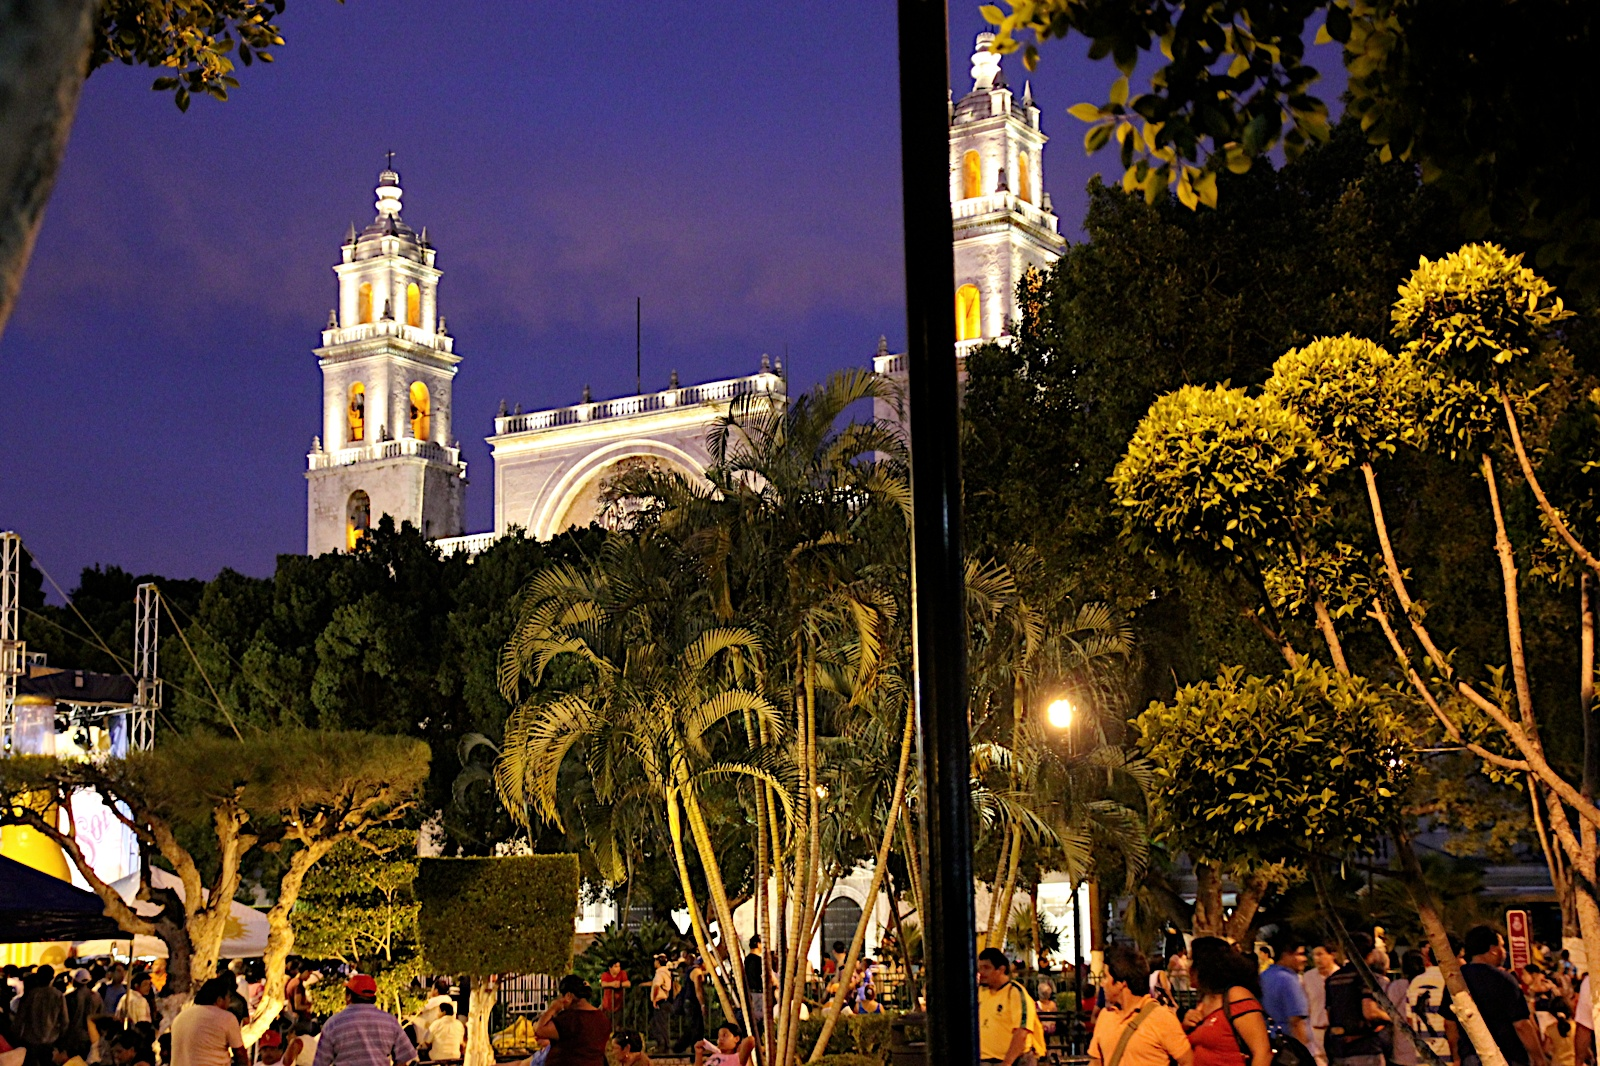 Downtown-Merida